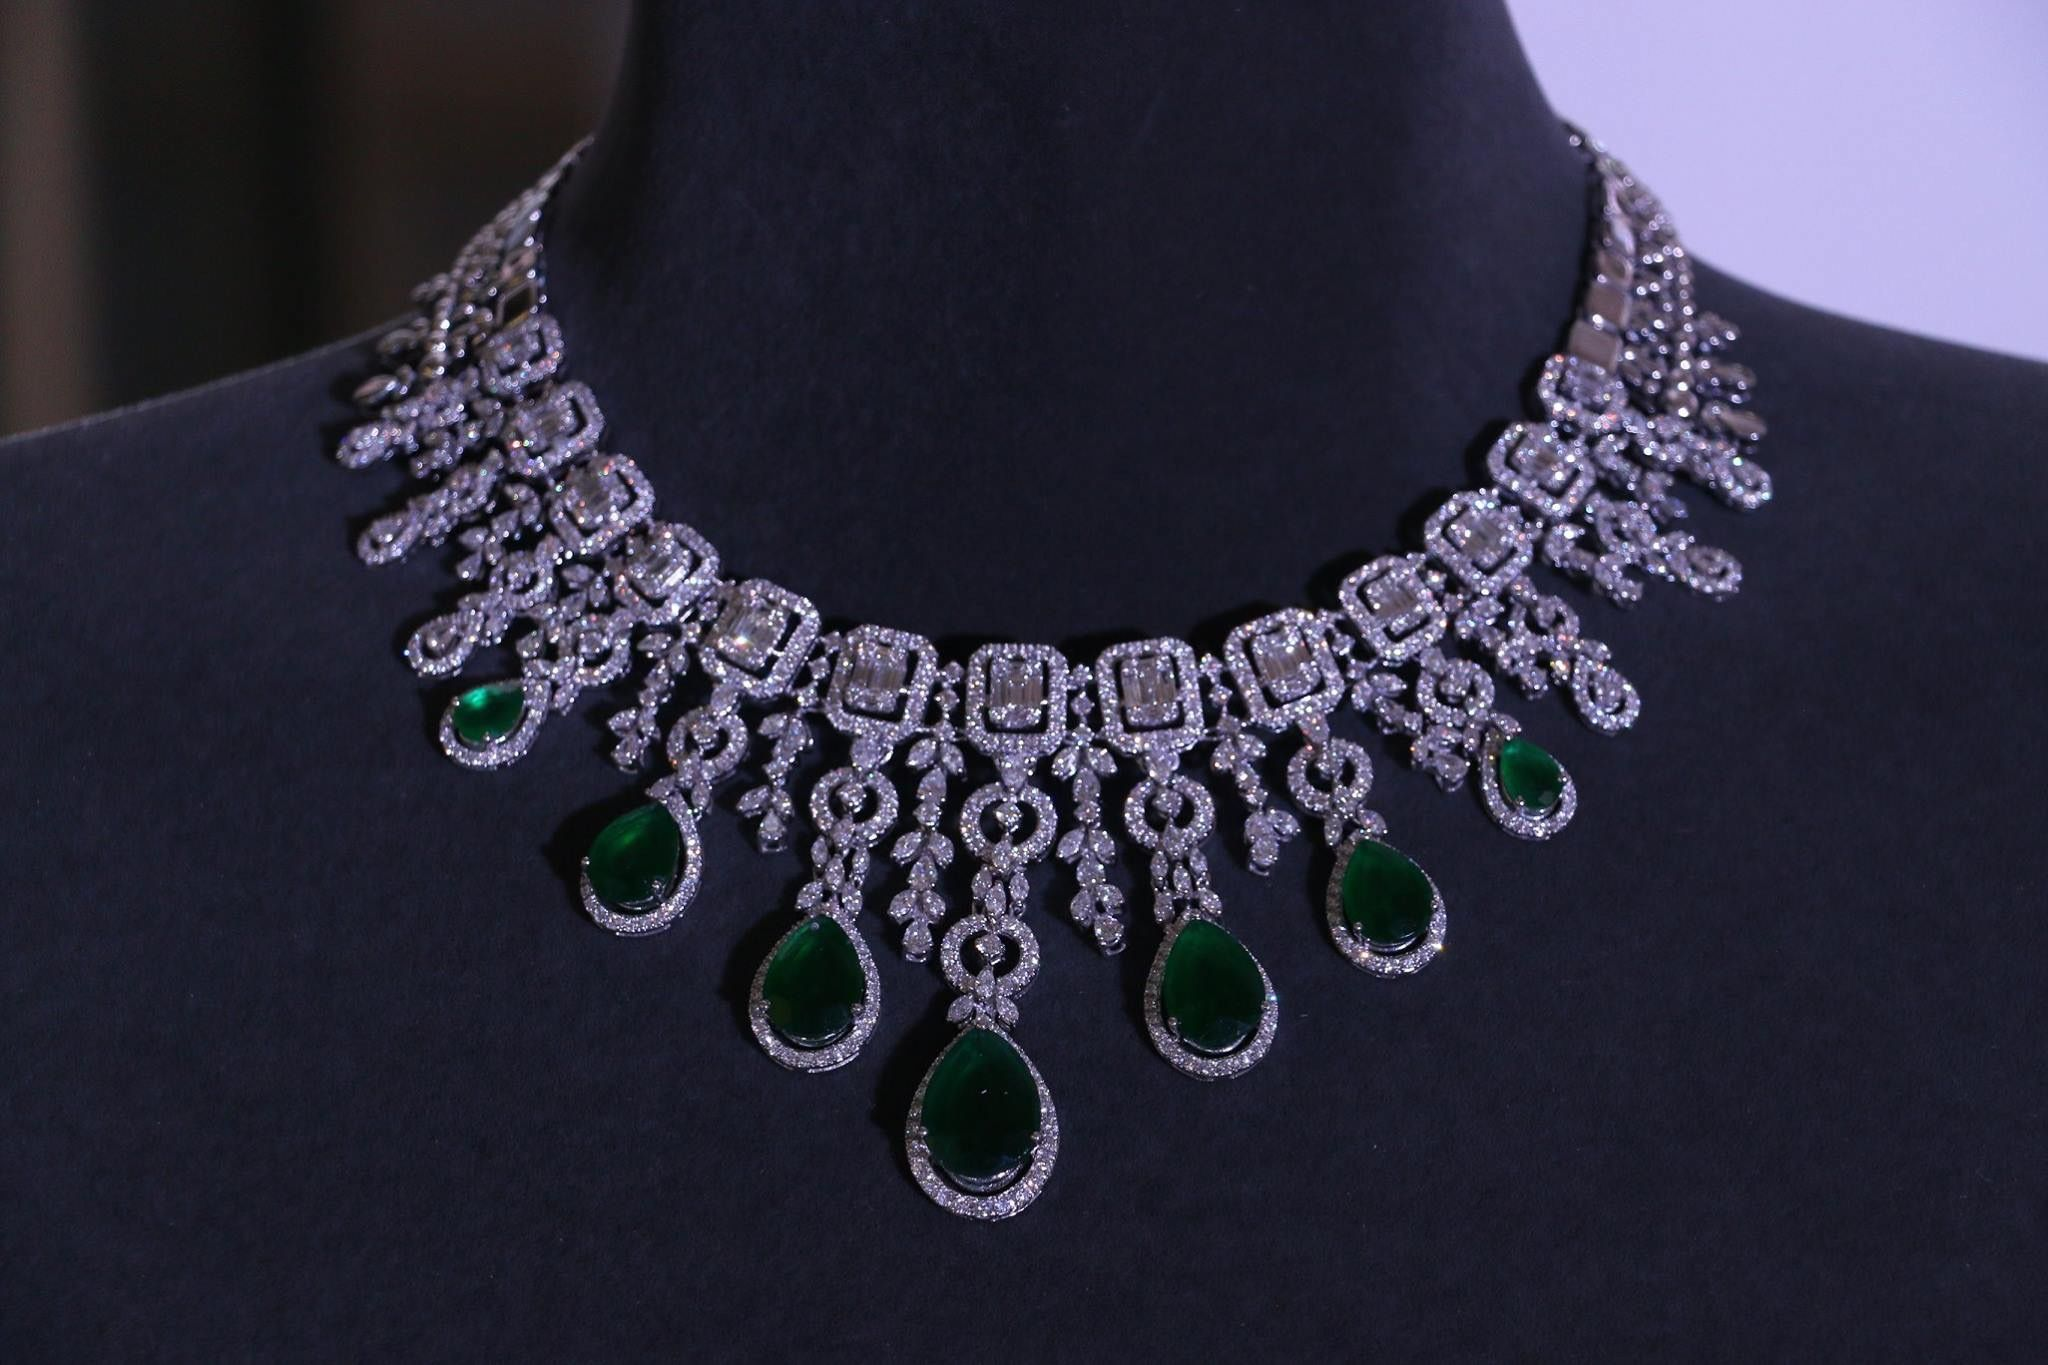 Pin by sriyans lunia on design pinterest diamond jewel and